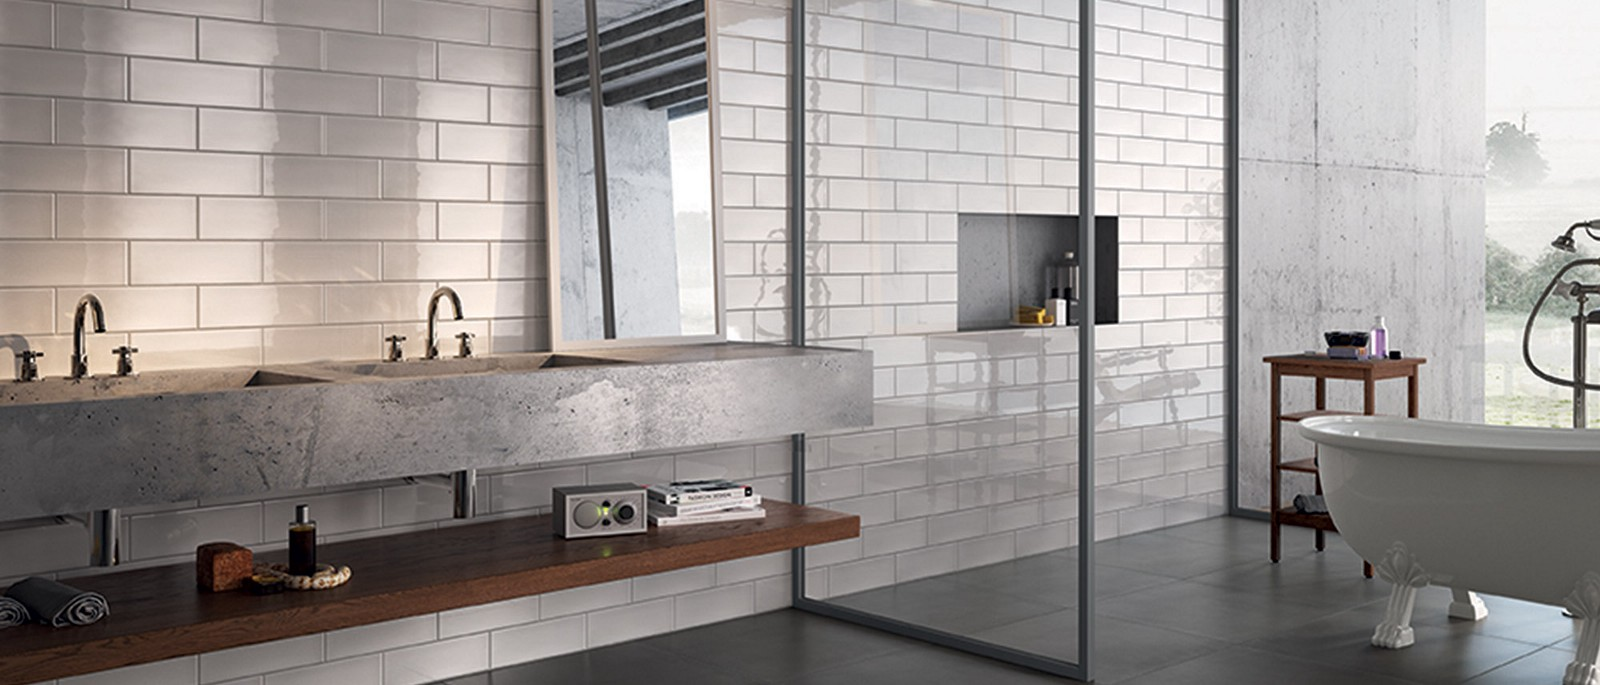 . Beautify your home interiors with stylish wall tiles